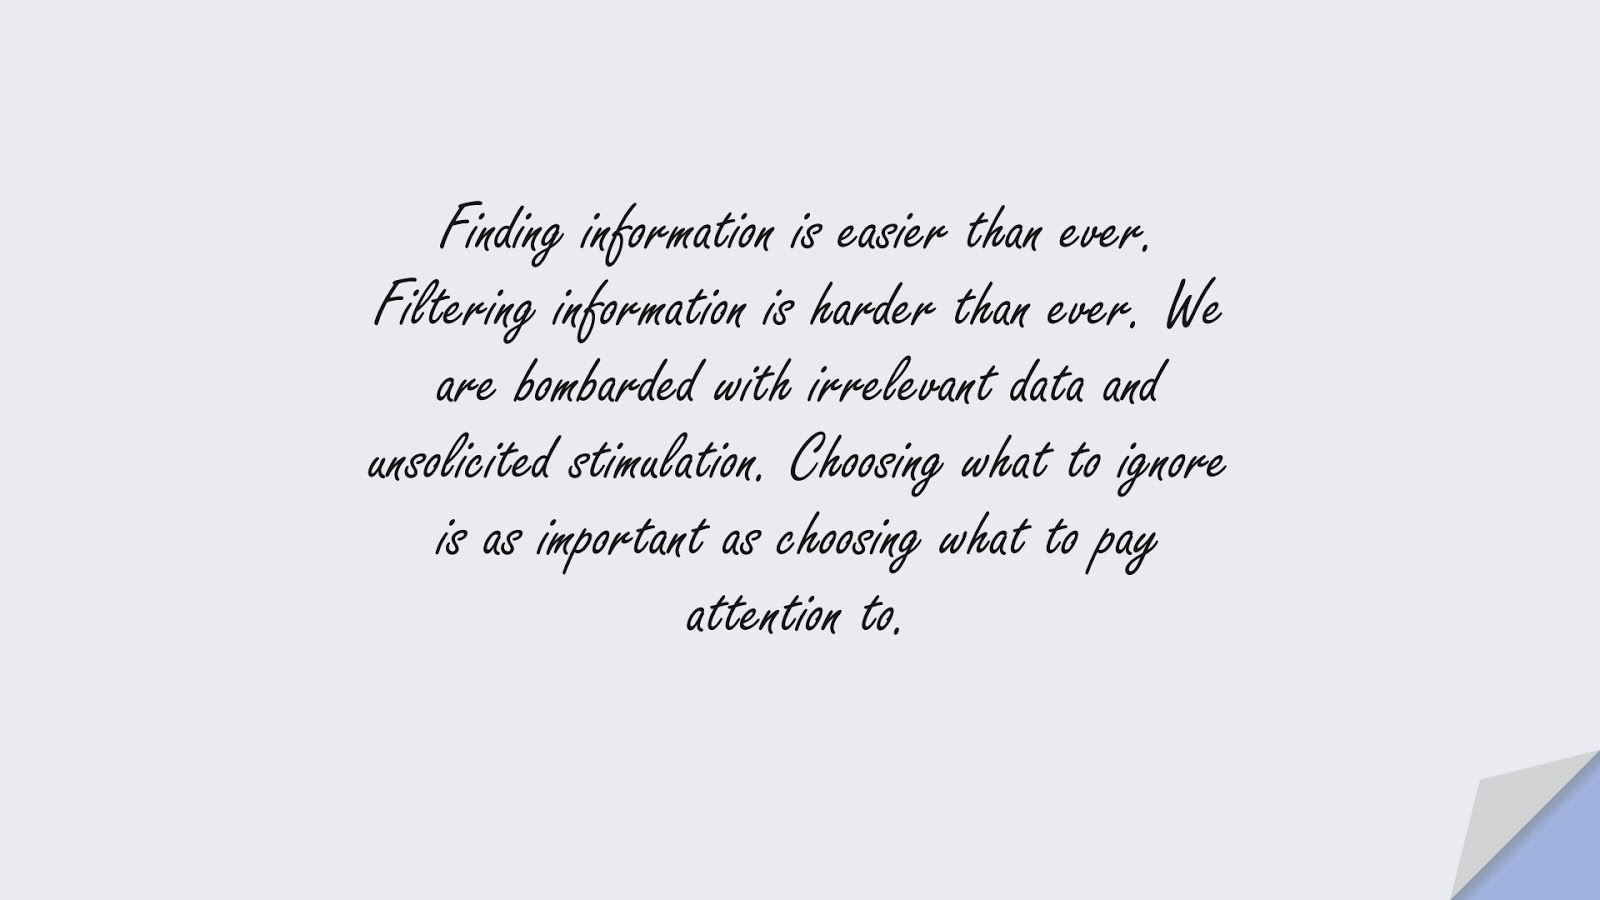 Finding information is easier than ever. Filtering information is harder than ever. We are bombarded with irrelevant data and unsolicited stimulation. Choosing what to ignore is as important as choosing what to pay attention to.FALSE